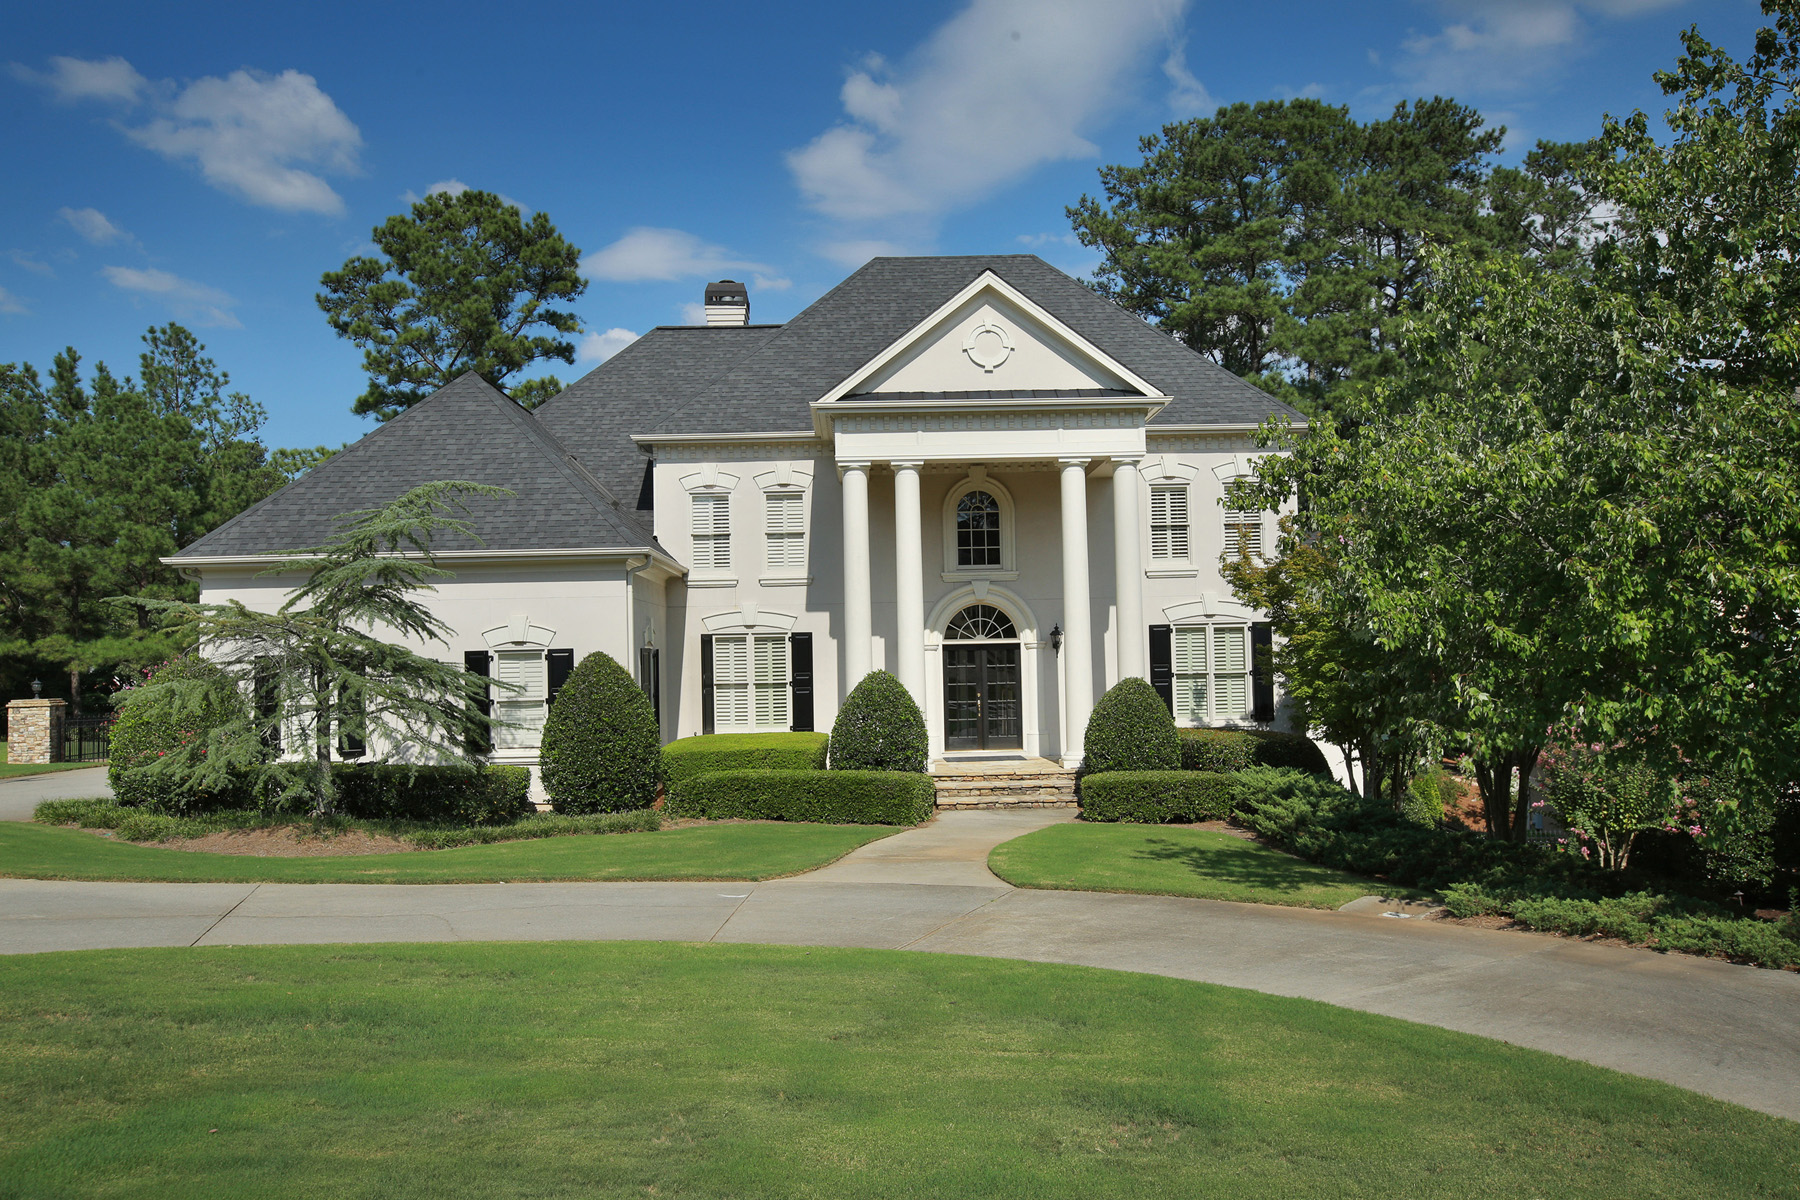 Single Family Home for Sale at Fabulous Grande Home On The Golf Course! 8035 Royal Saint Georges Lane Duluth, Georgia 30097 United States